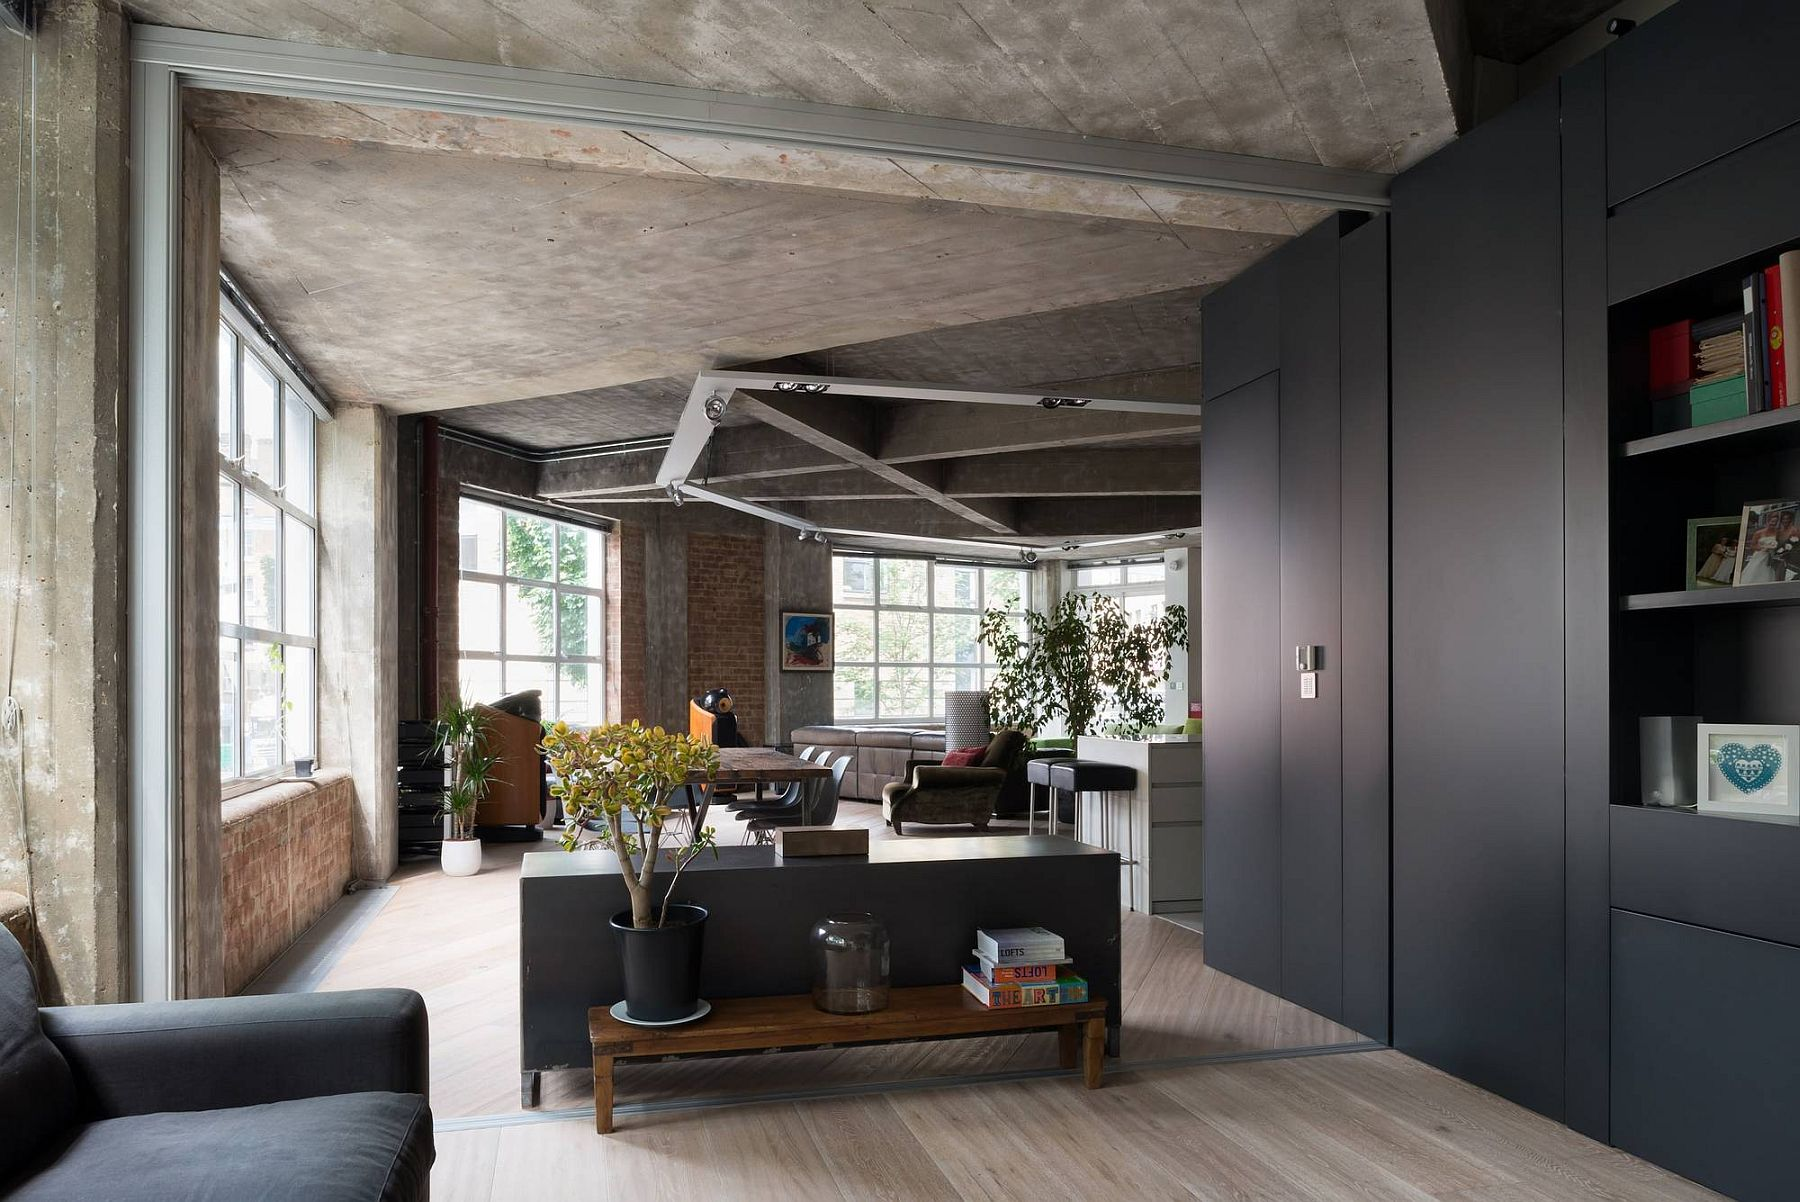 Modern joinery pieces bring modernity to the industrial loft